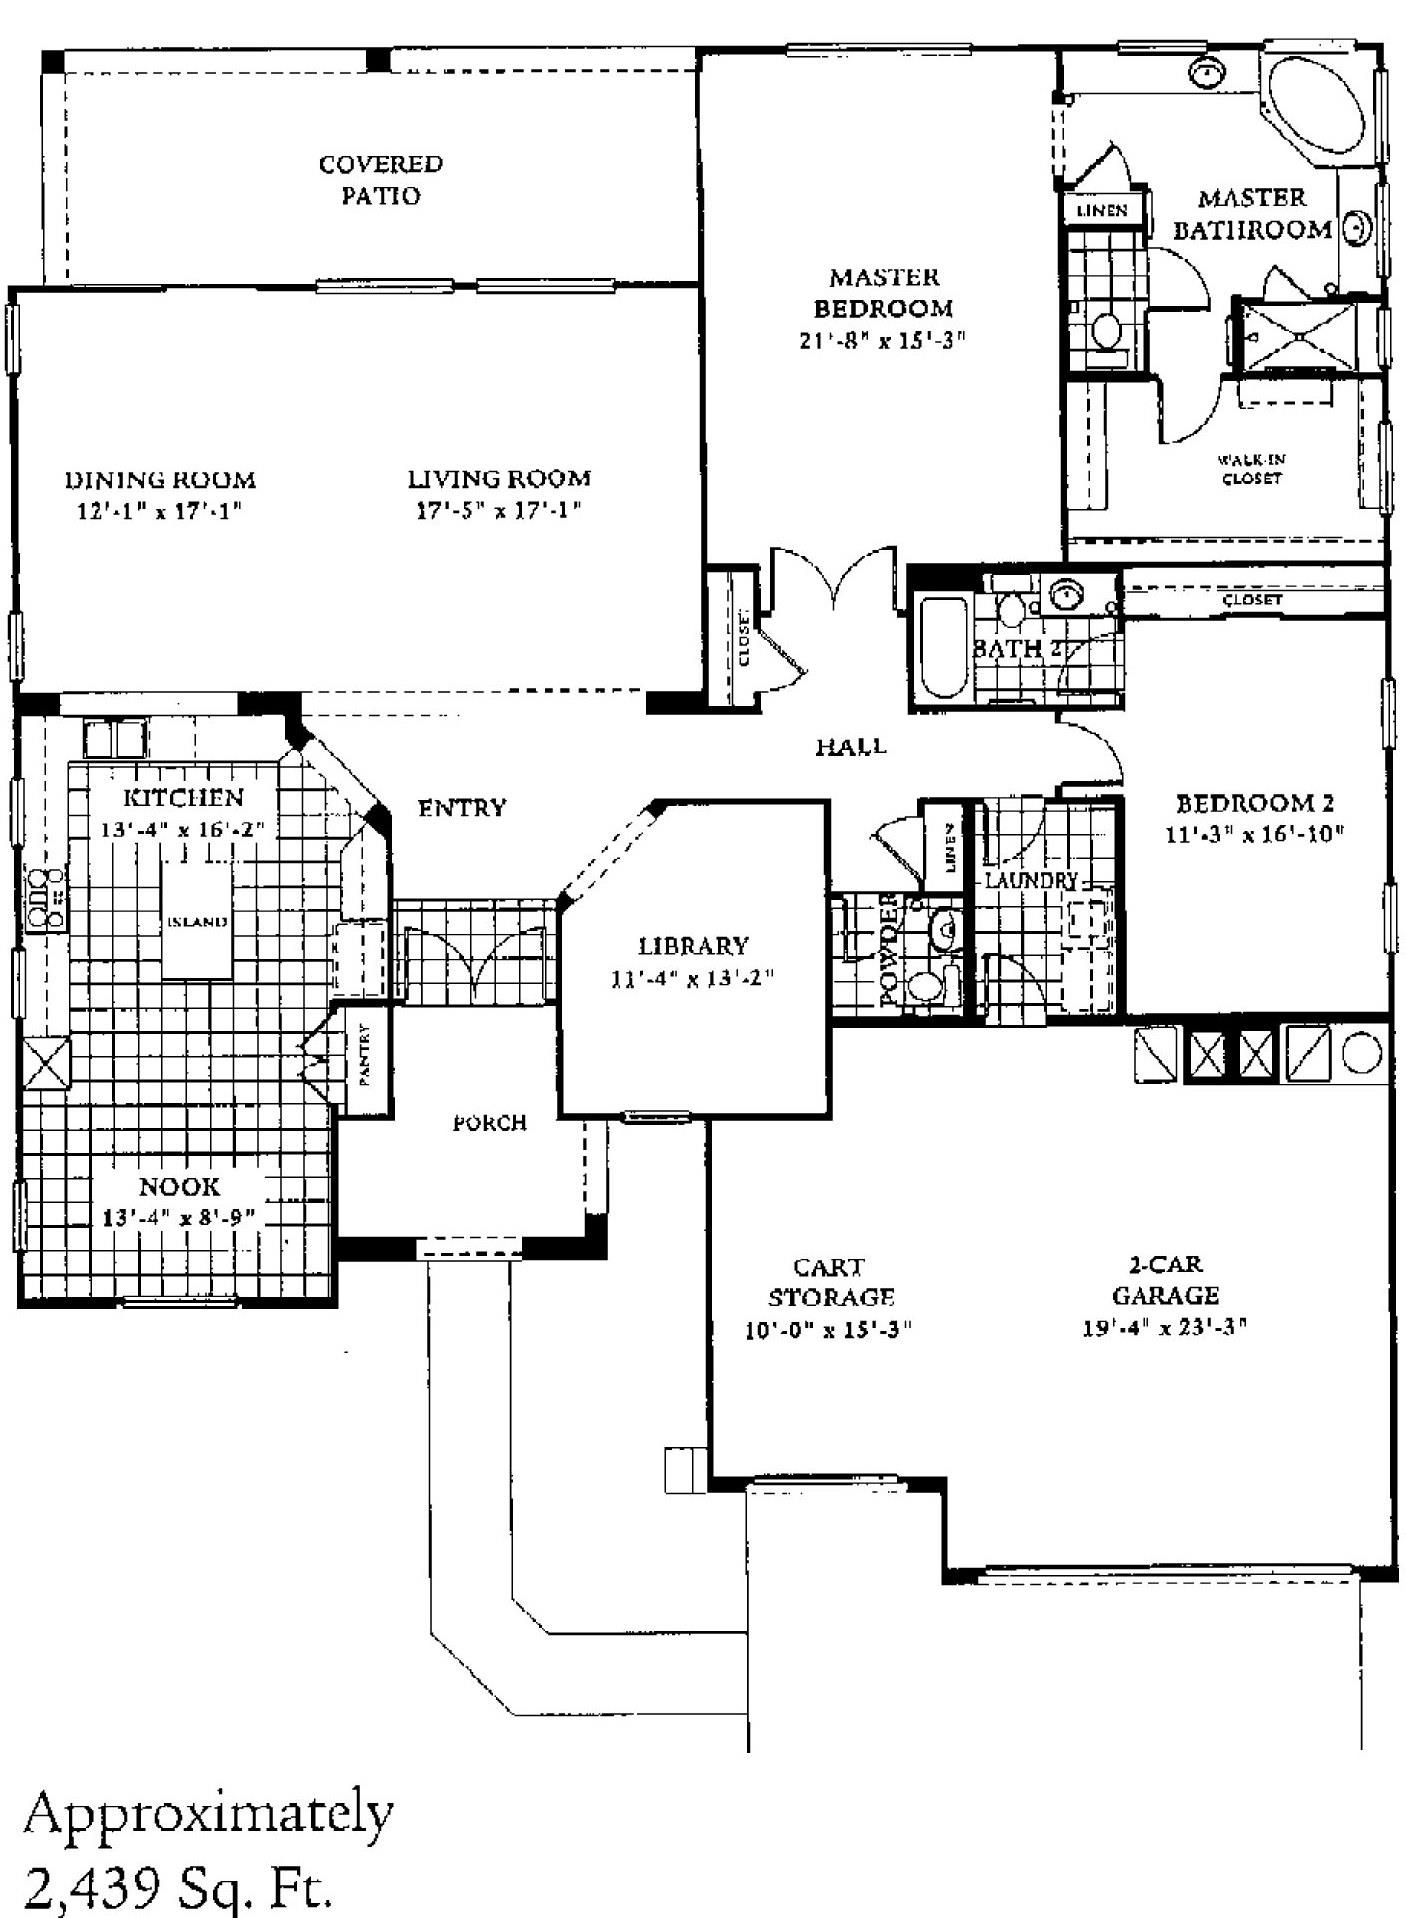 Sun City Grand Ashbury floor plan, Del Webb Sun City Grand Floor Plan Model Home House Plans Floorplans Models in Surprise Phoenix Arizona AZ Ken Meade Realty Kathy Anderson